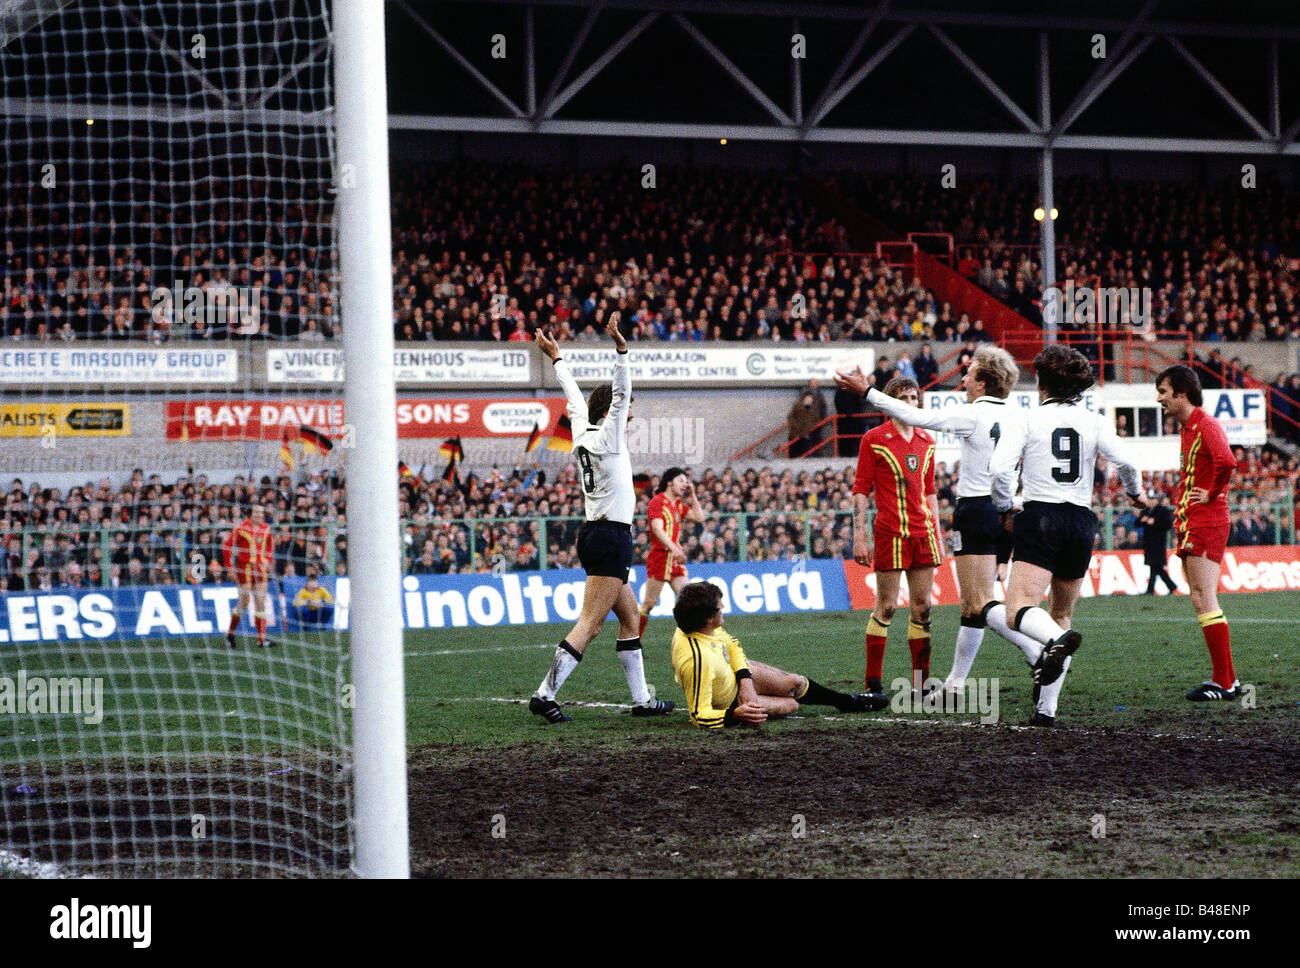 Sport / Sports, soccer, football, European championship qualification, Wales against Germany in Wrexham, Wales (0:2), - Stock Image